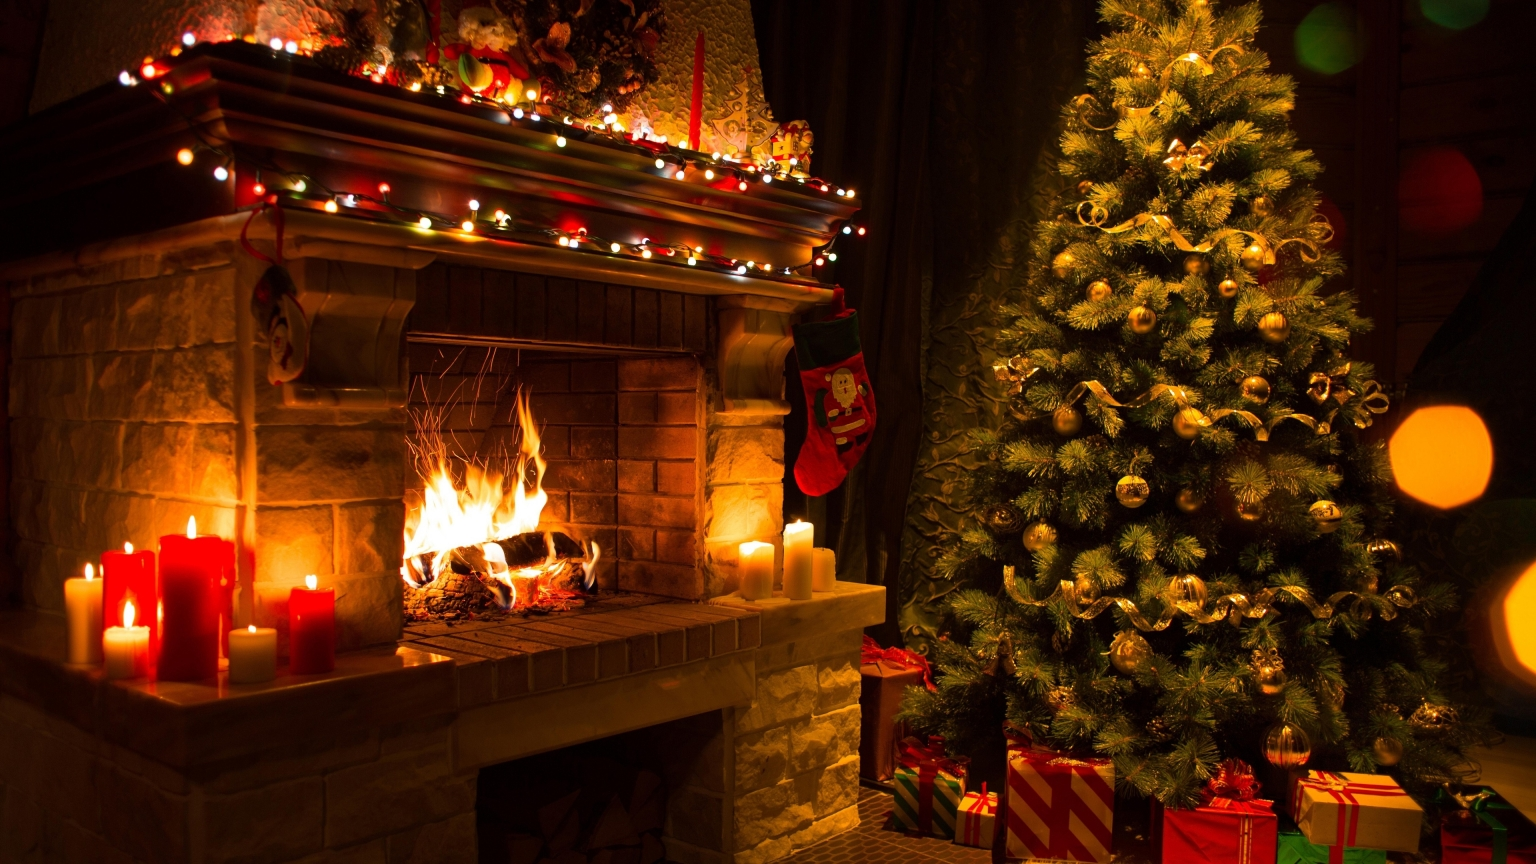 Christmas Home Decorations for 1536 x 864 HDTV resolution